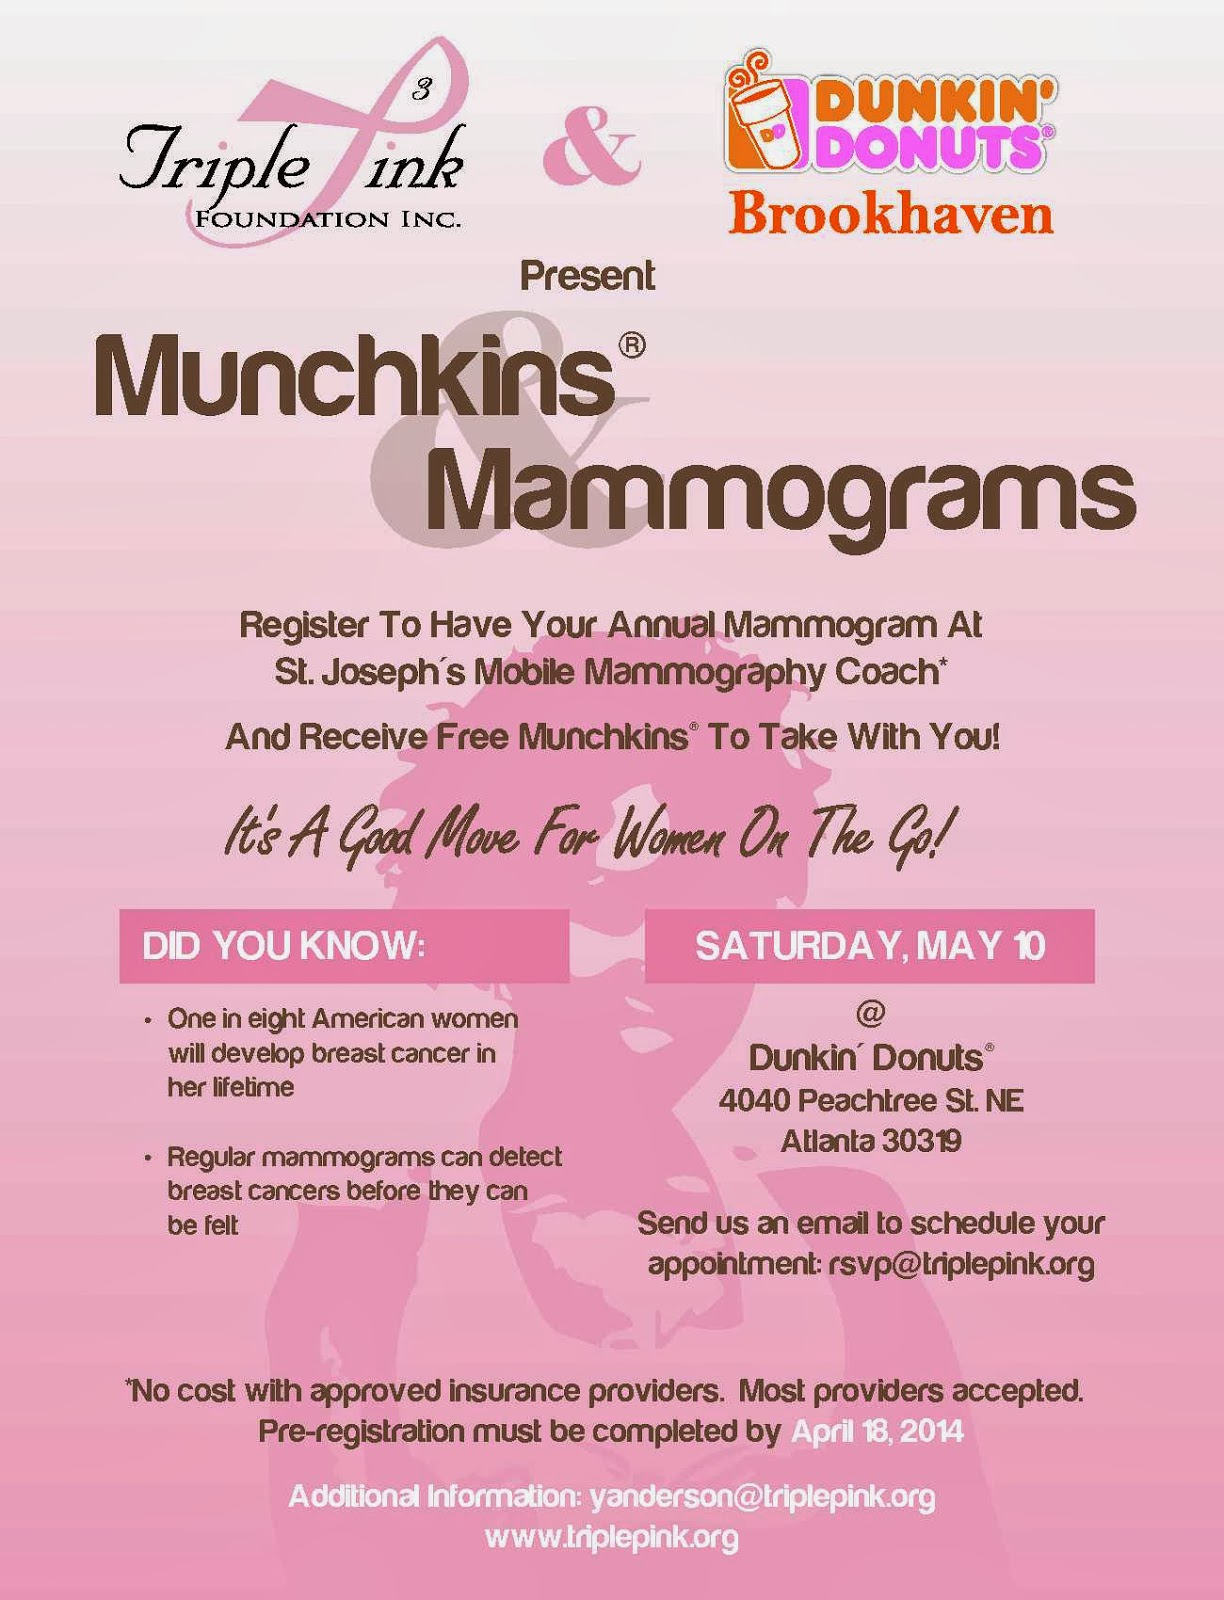 Munchkins & Mammograms flyer